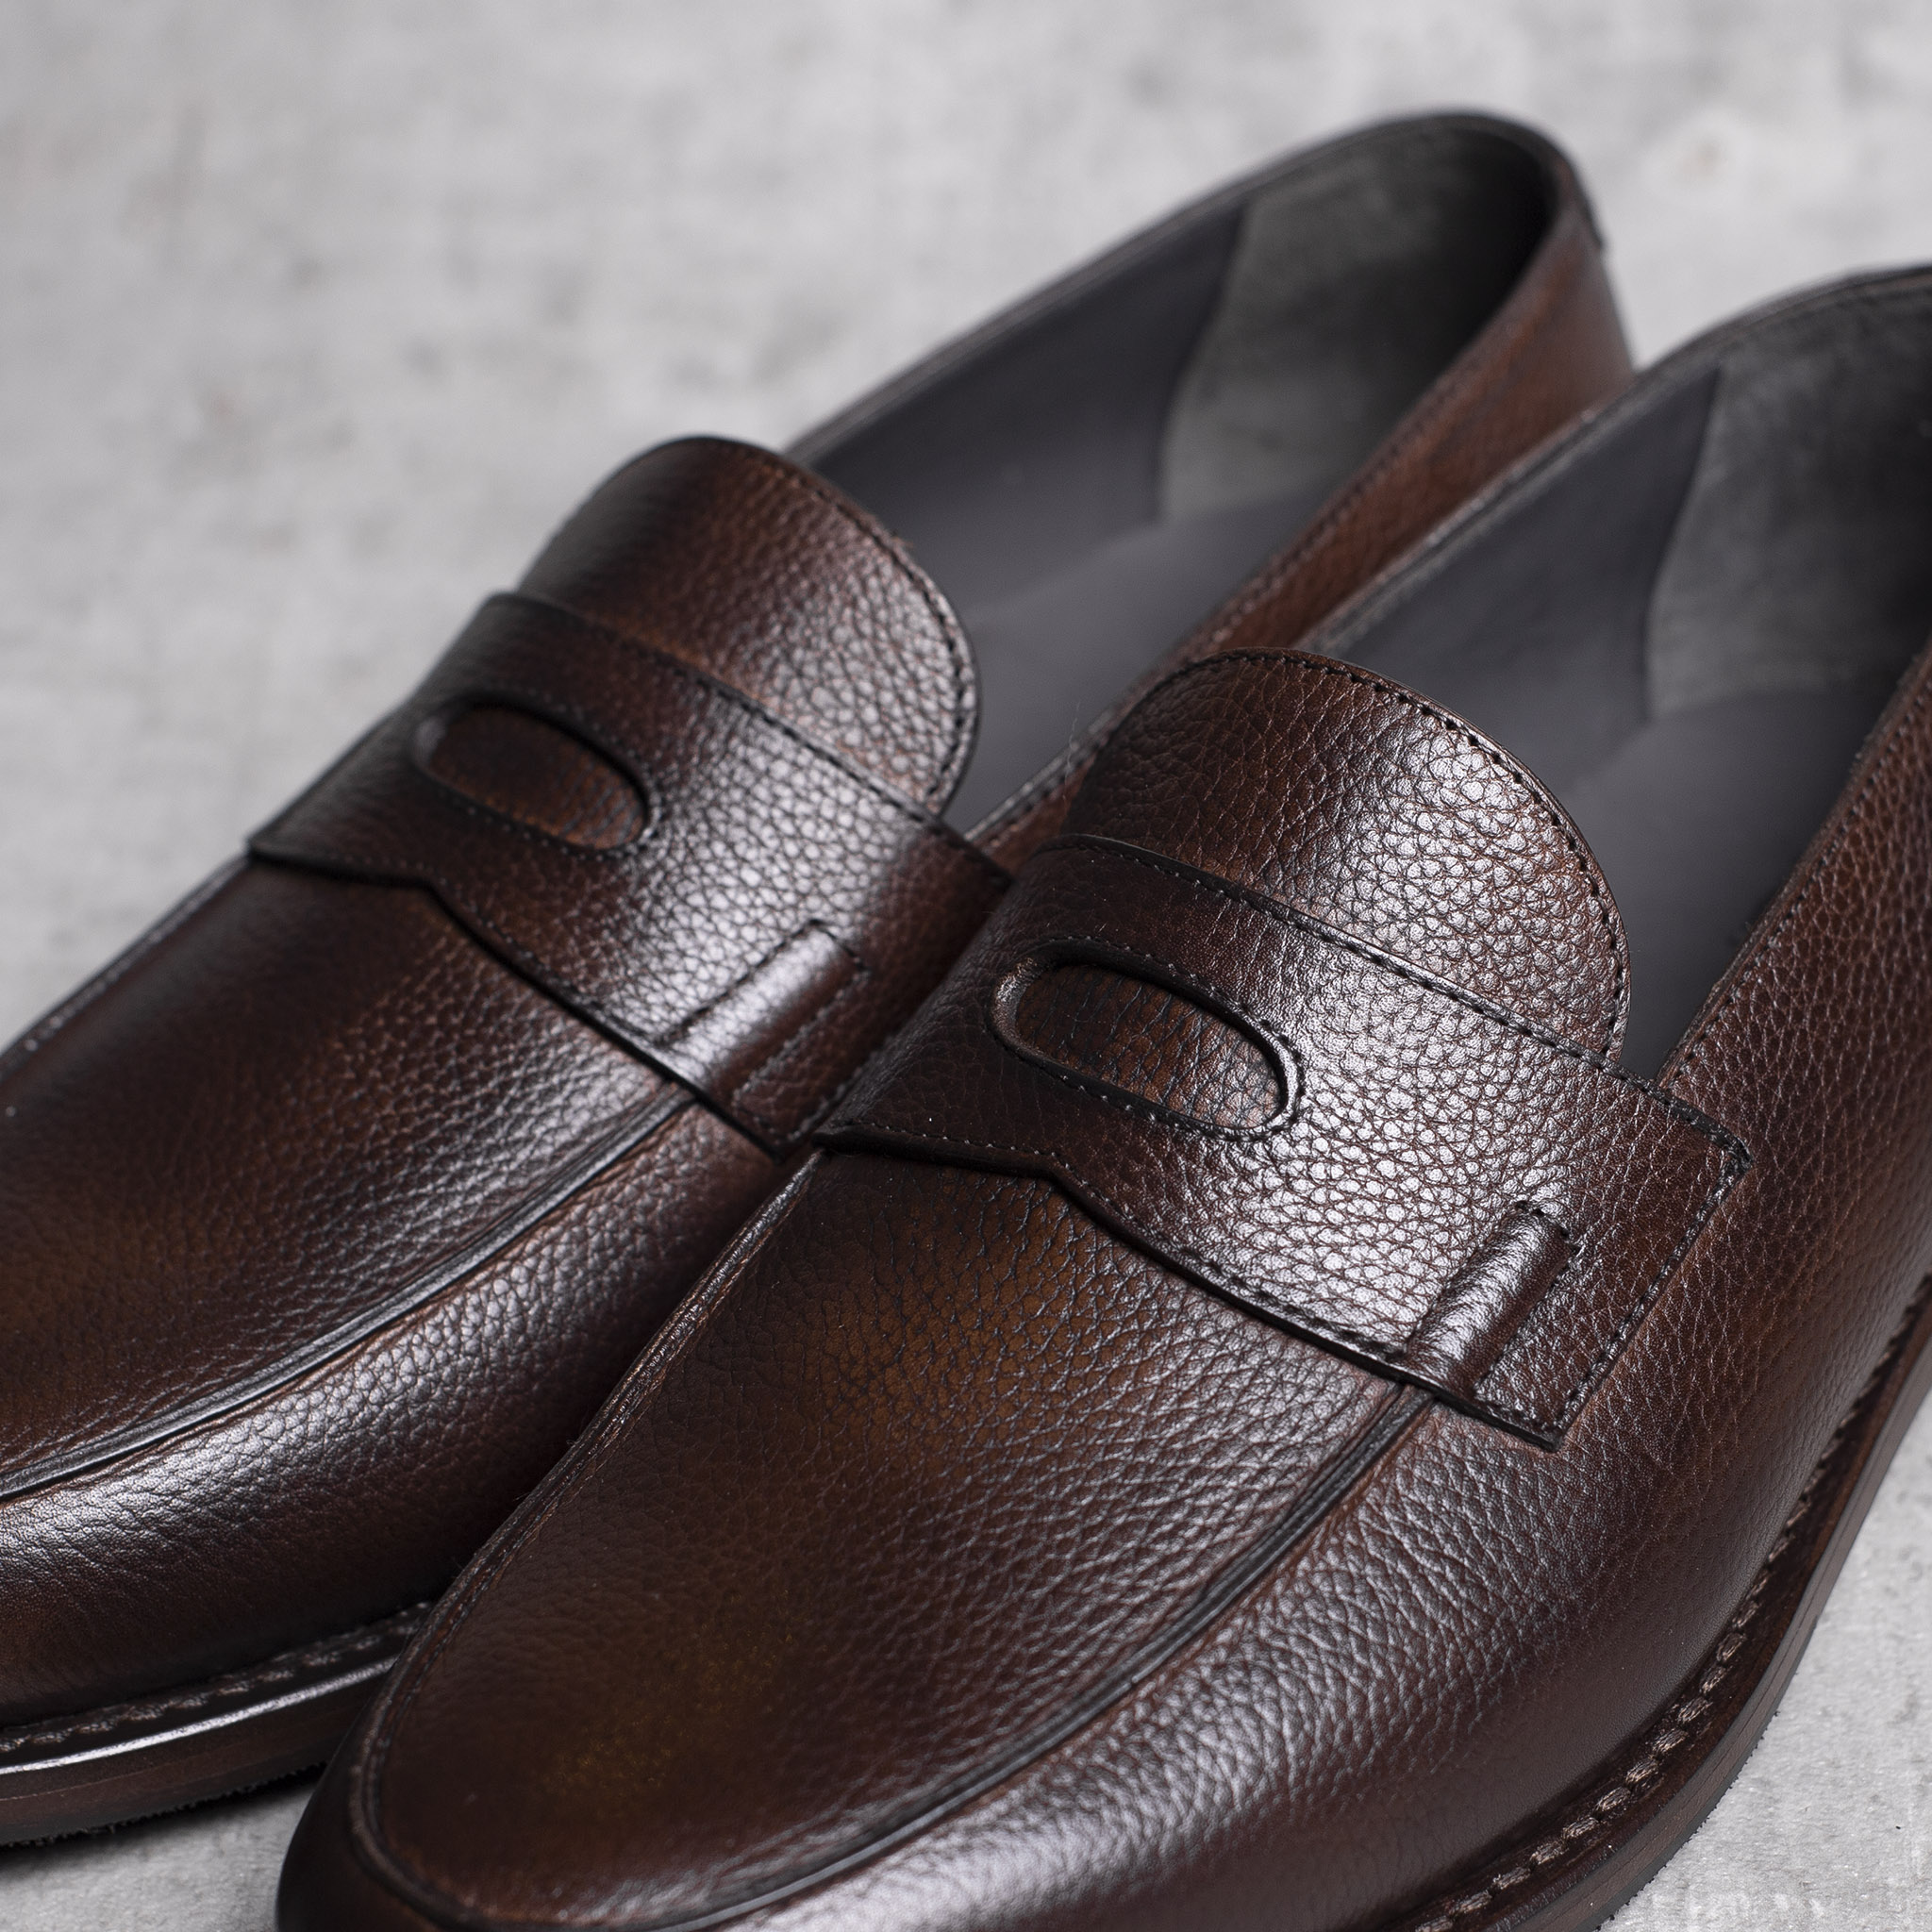 LOAFERS · 0647 Grain leather Toffee 6